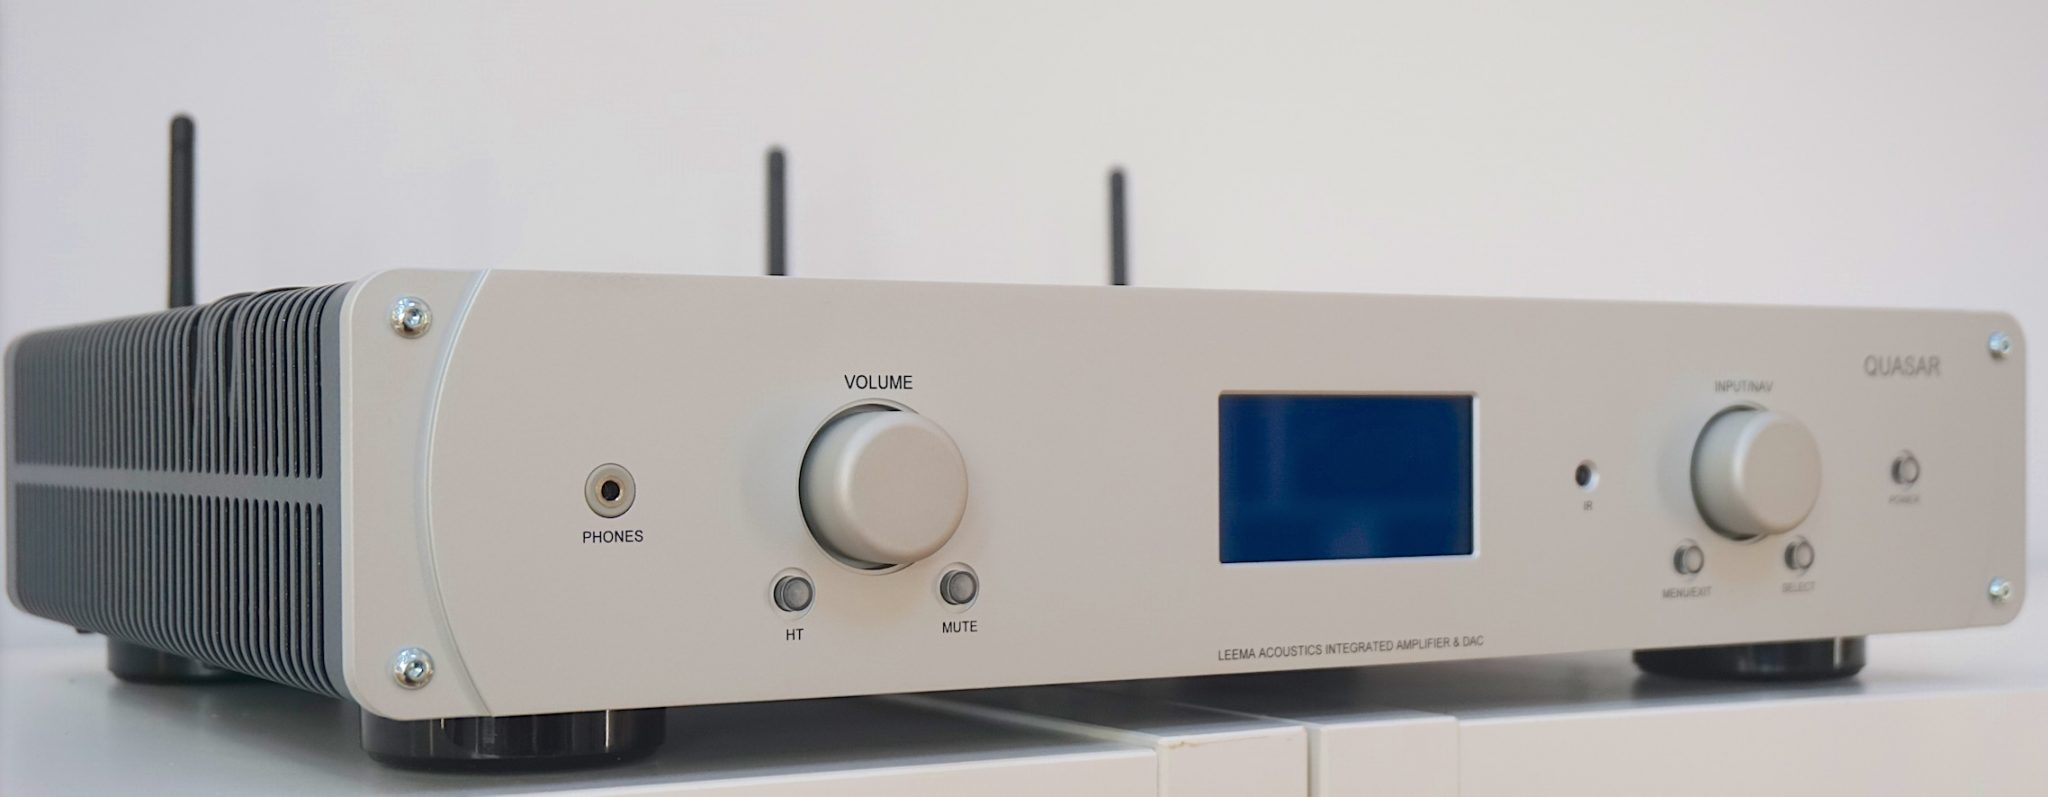 Quasar, an all-in-one hi-fi system from Leema